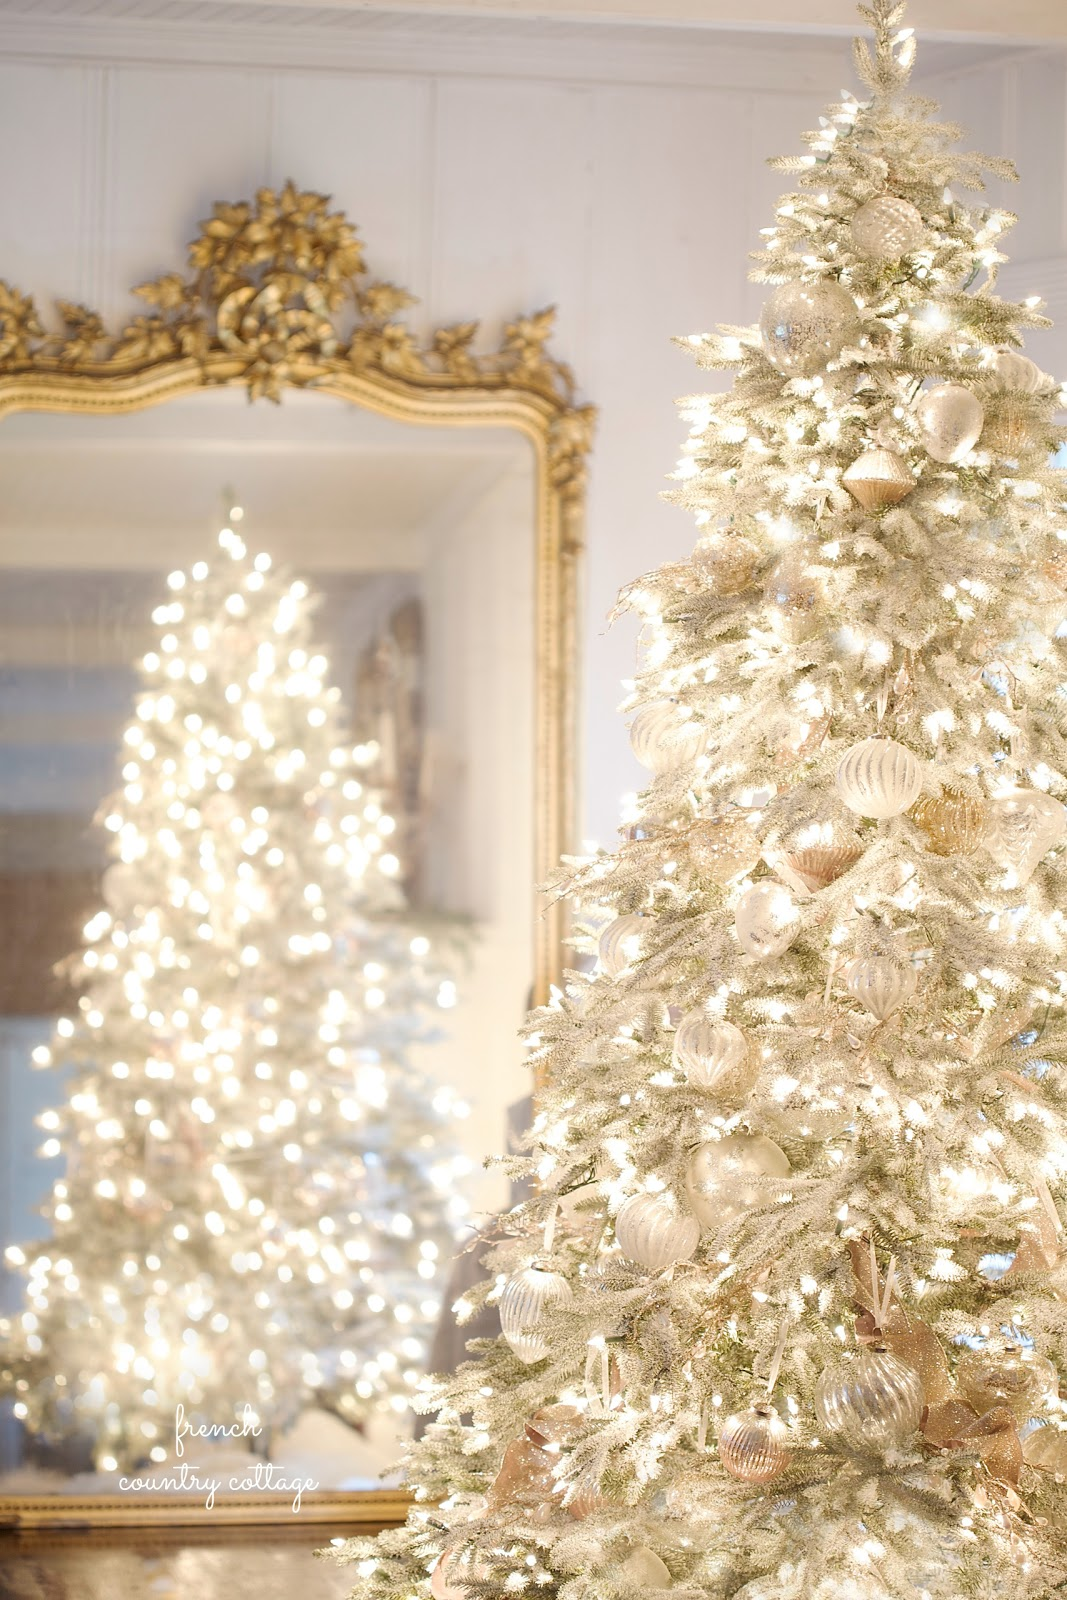 It 39 s beginning to look a lot like christmas elegant for White and gold tree decorations